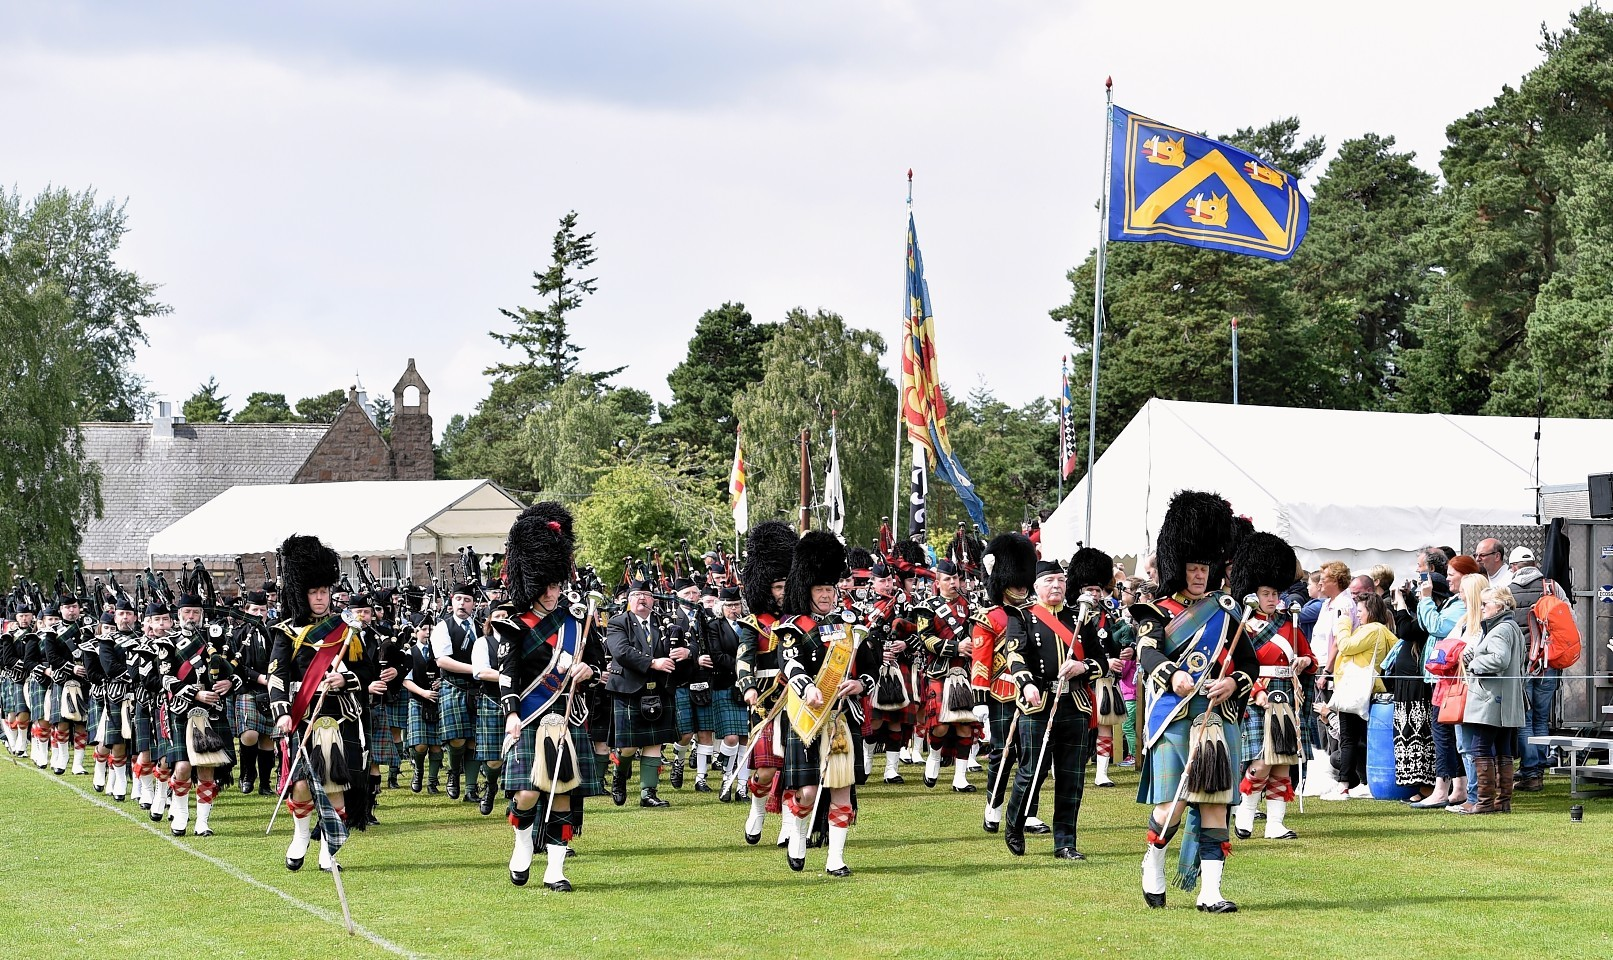 Aboyne Highland Games - The mass pipe bands. Picture by COLIN RENNIE